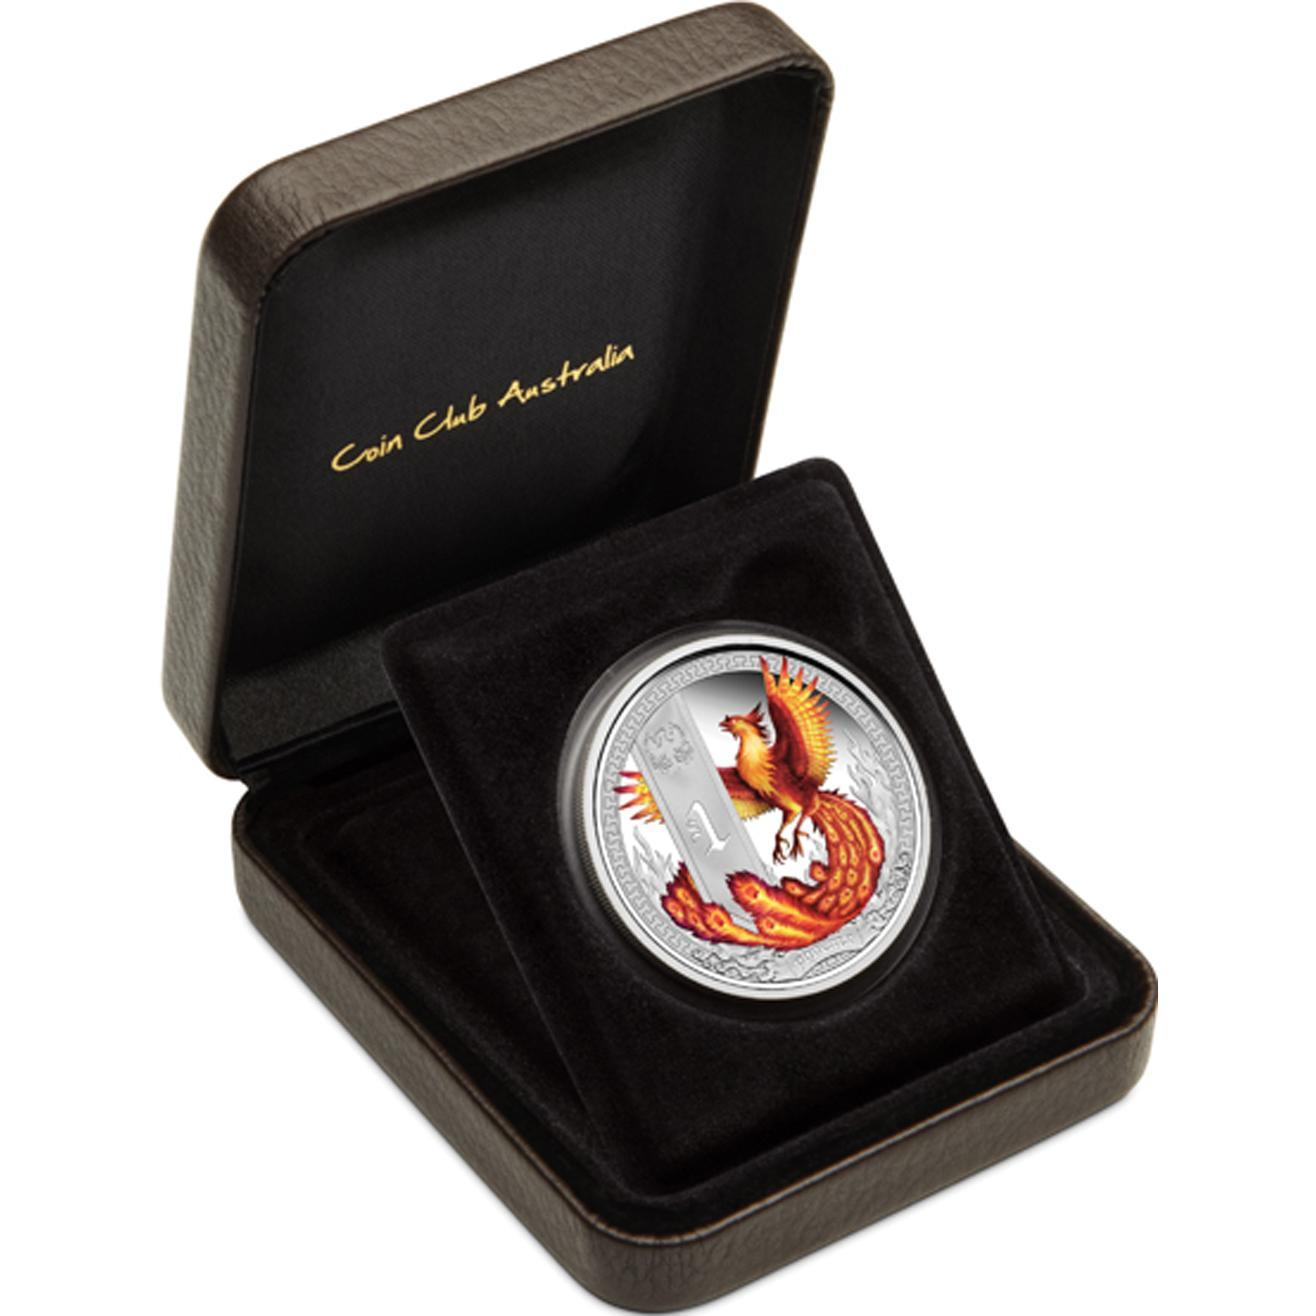 Mythical Creatures – Phoenix 2013 1oz Silver Proof Coin - V dárkové kazetě